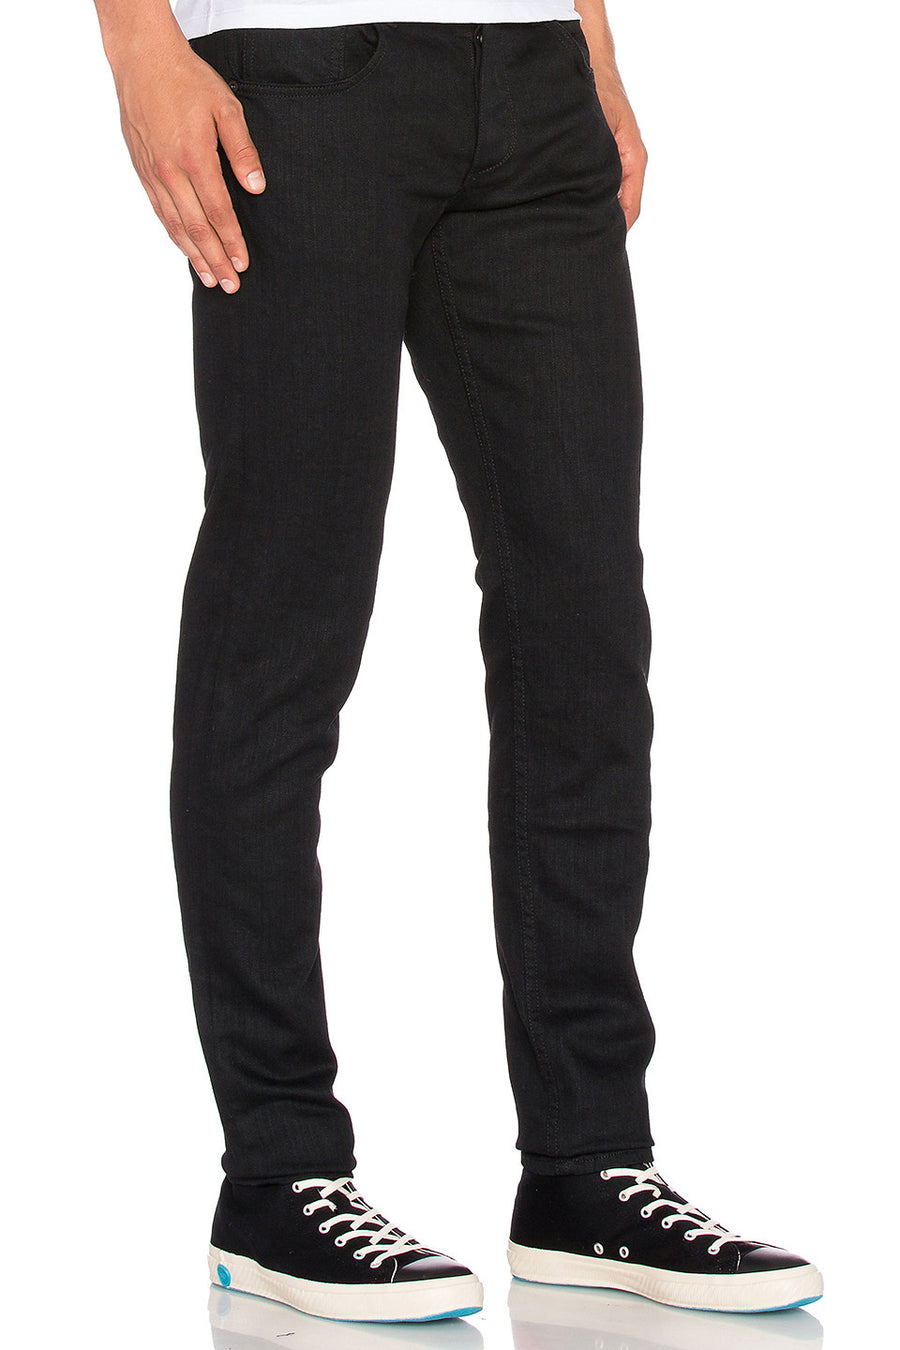 Fit 1 Standard Issue Jeans - Black - Pavilion